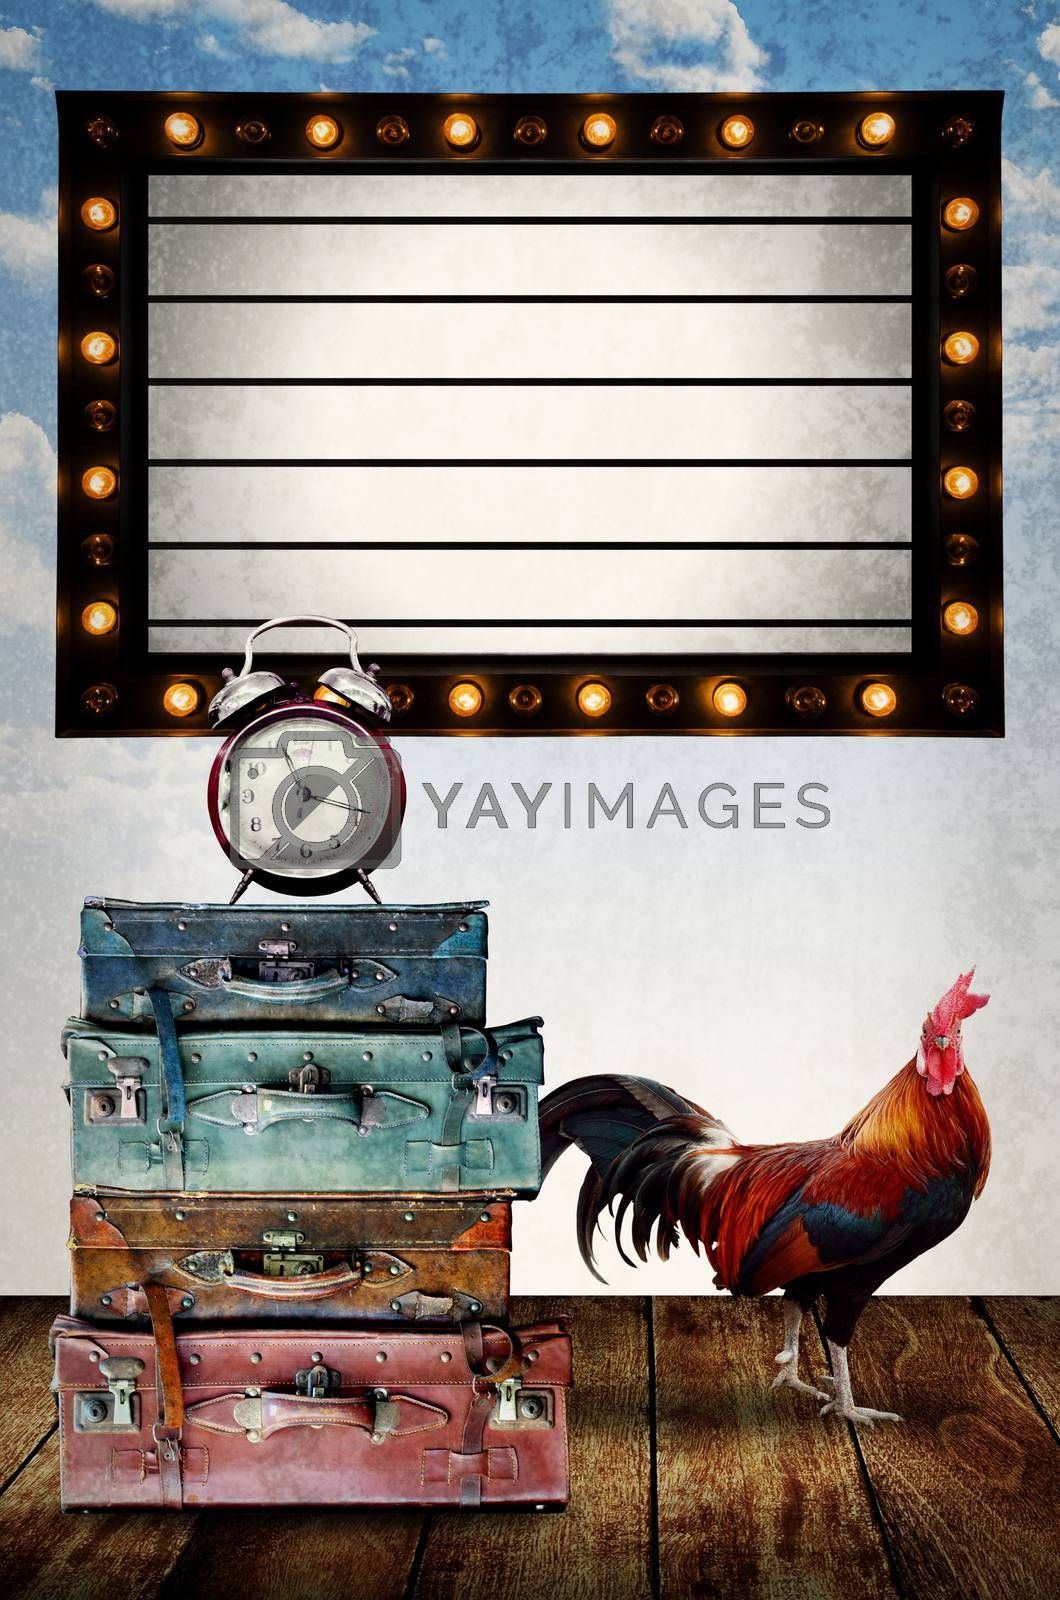 Vintage Light box program board with retro bag and chicken